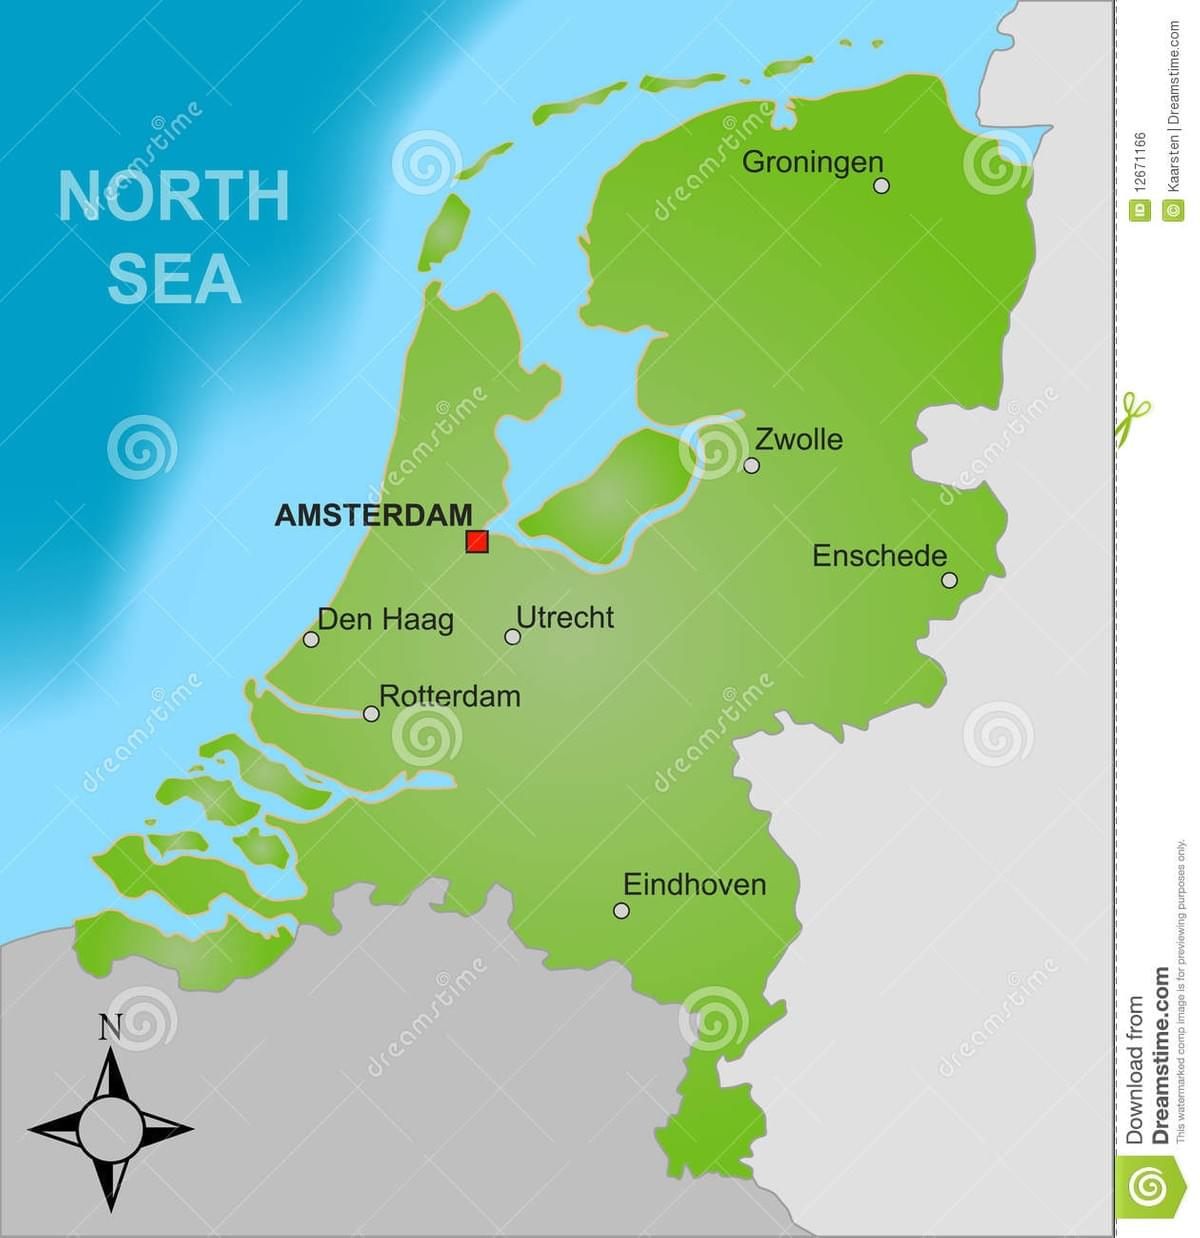 Best cities to open an office in Holland on